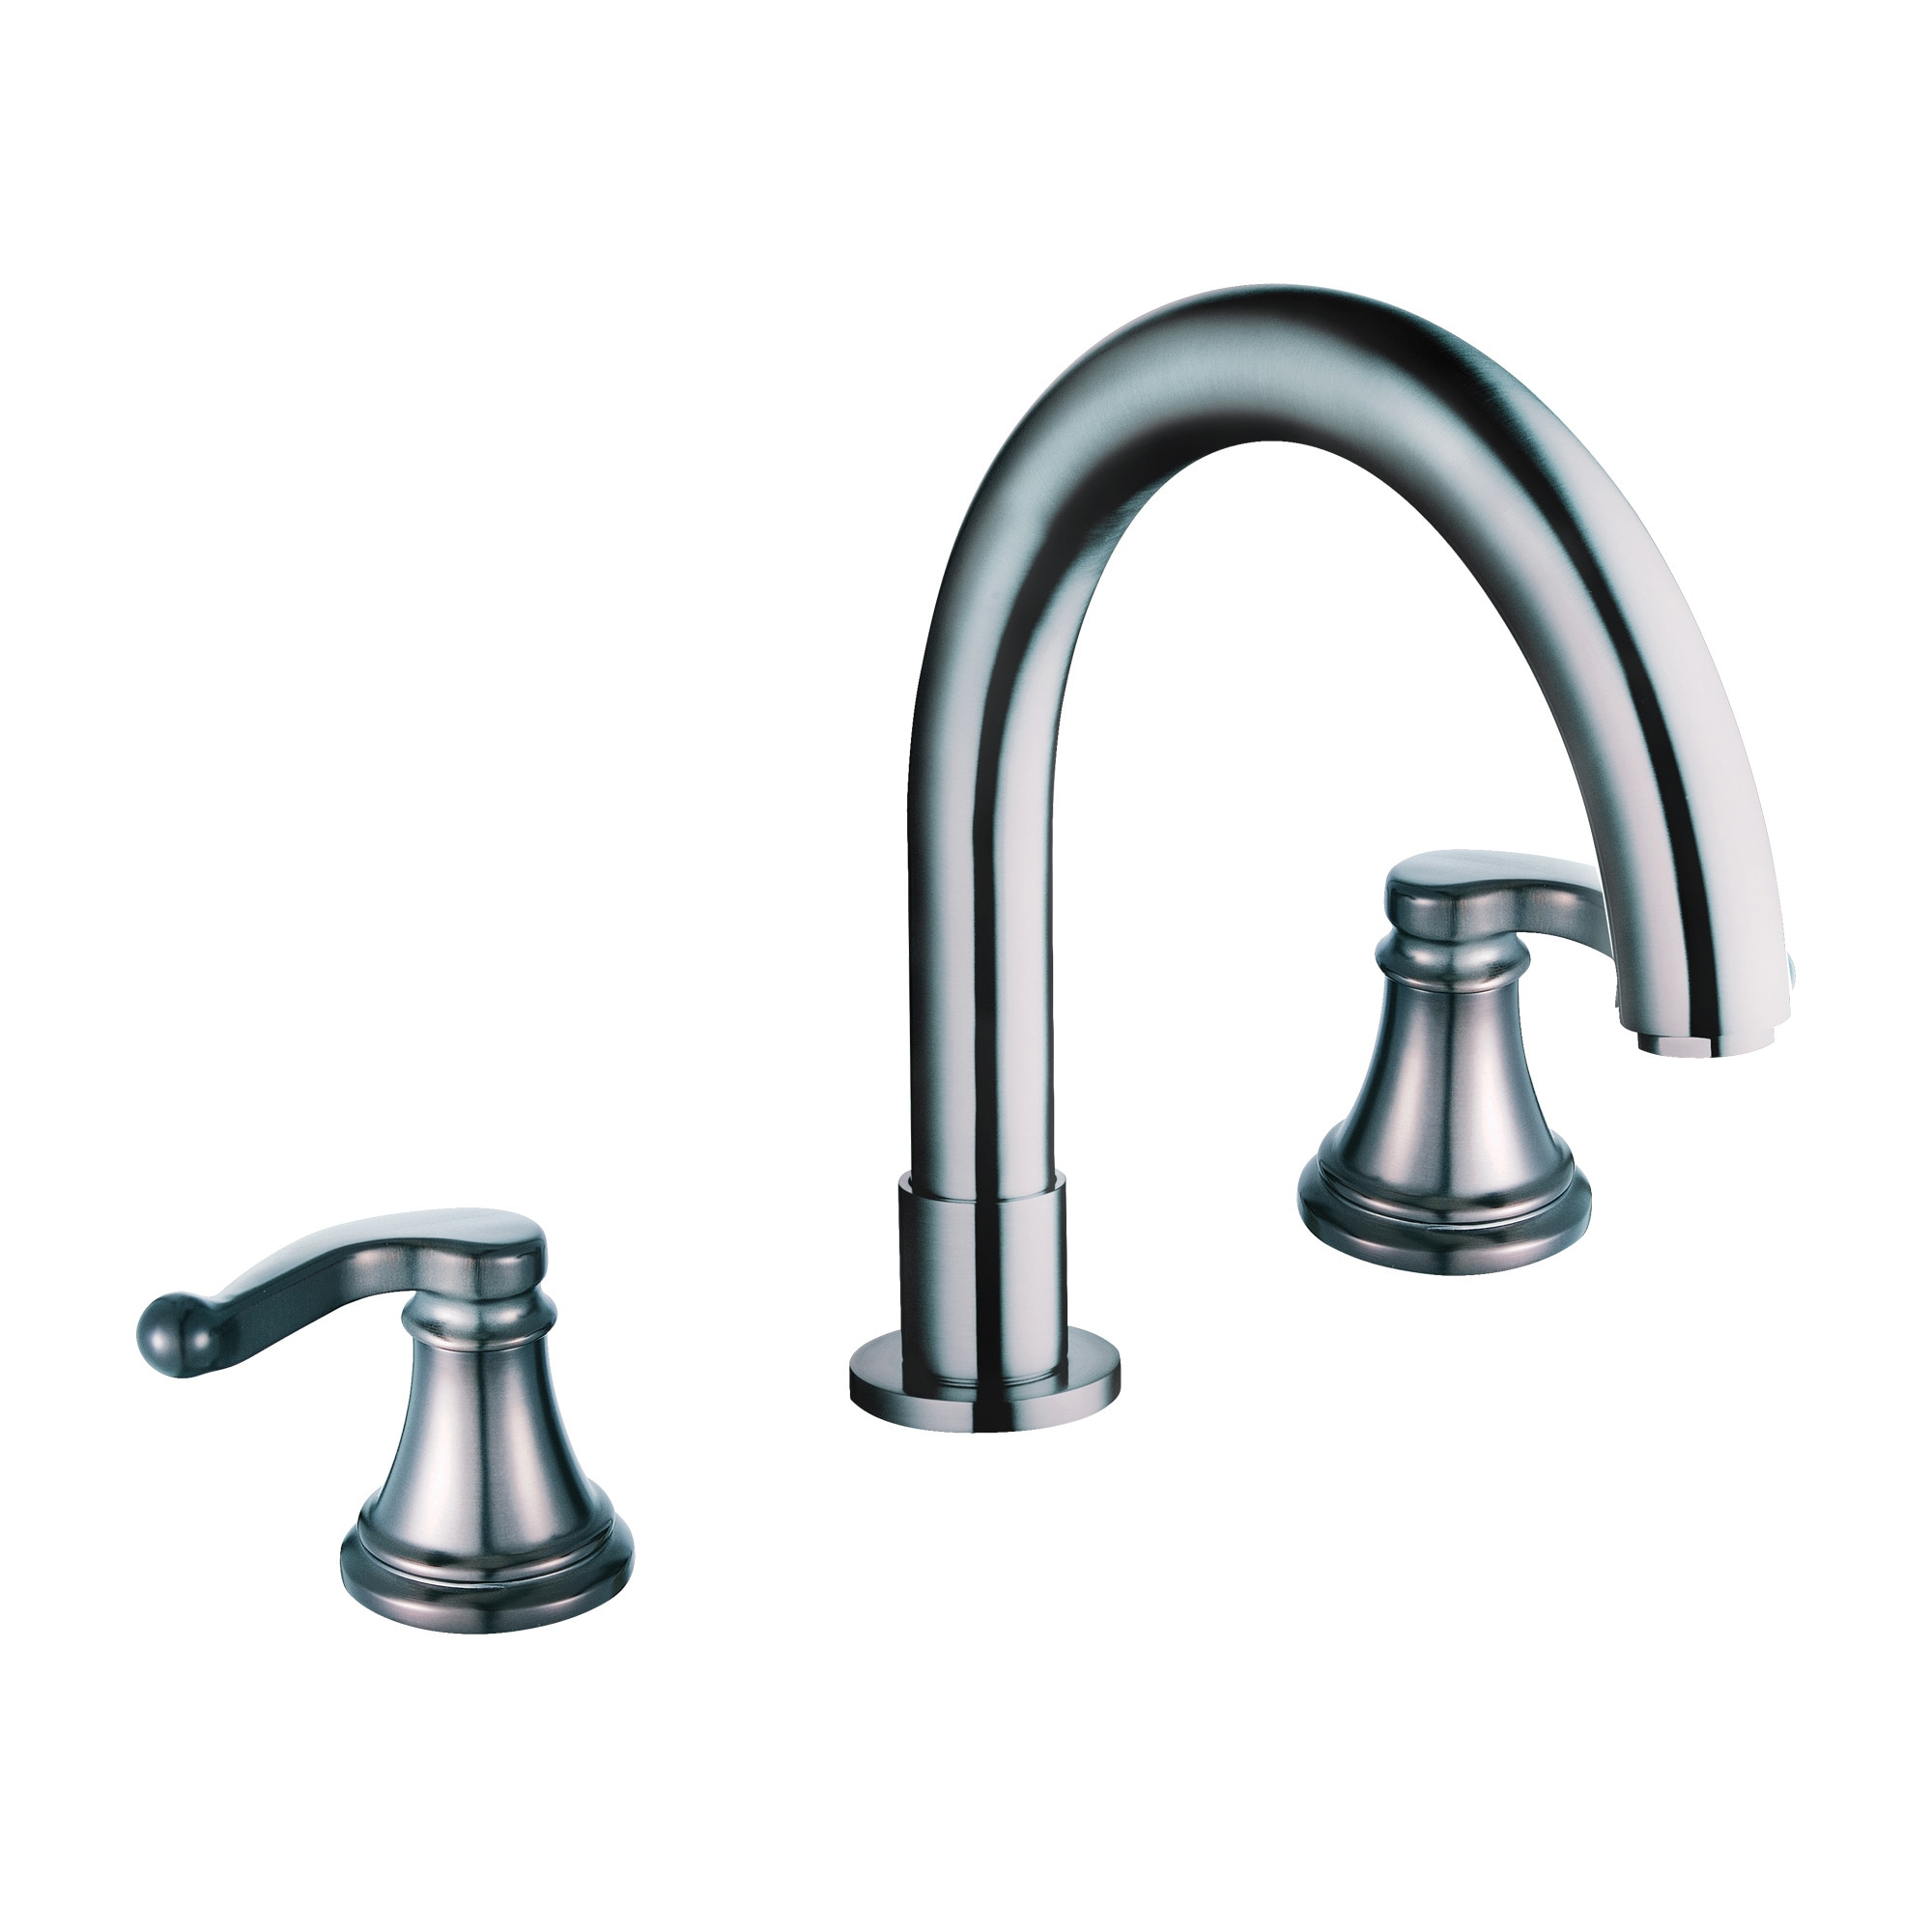 Yosemite Two Handle Widespread Tub Faucet, Nickel